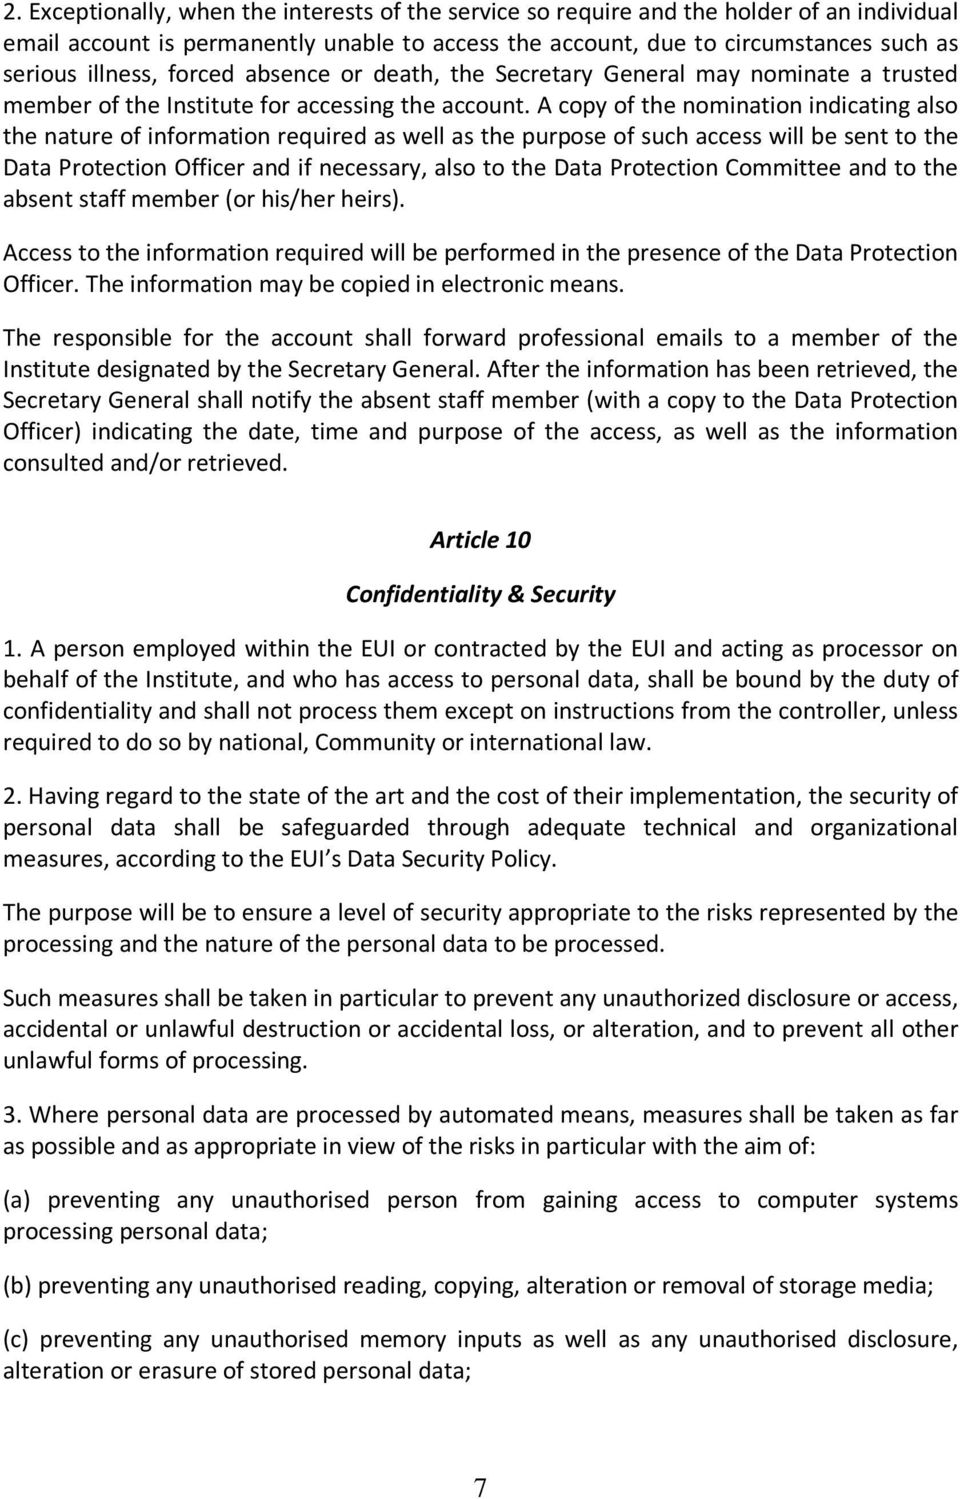 A copy of the nomination indicating also the nature of information required as well as the purpose of such access will be sent to the Data Protection Officer and if necessary, also to the Data